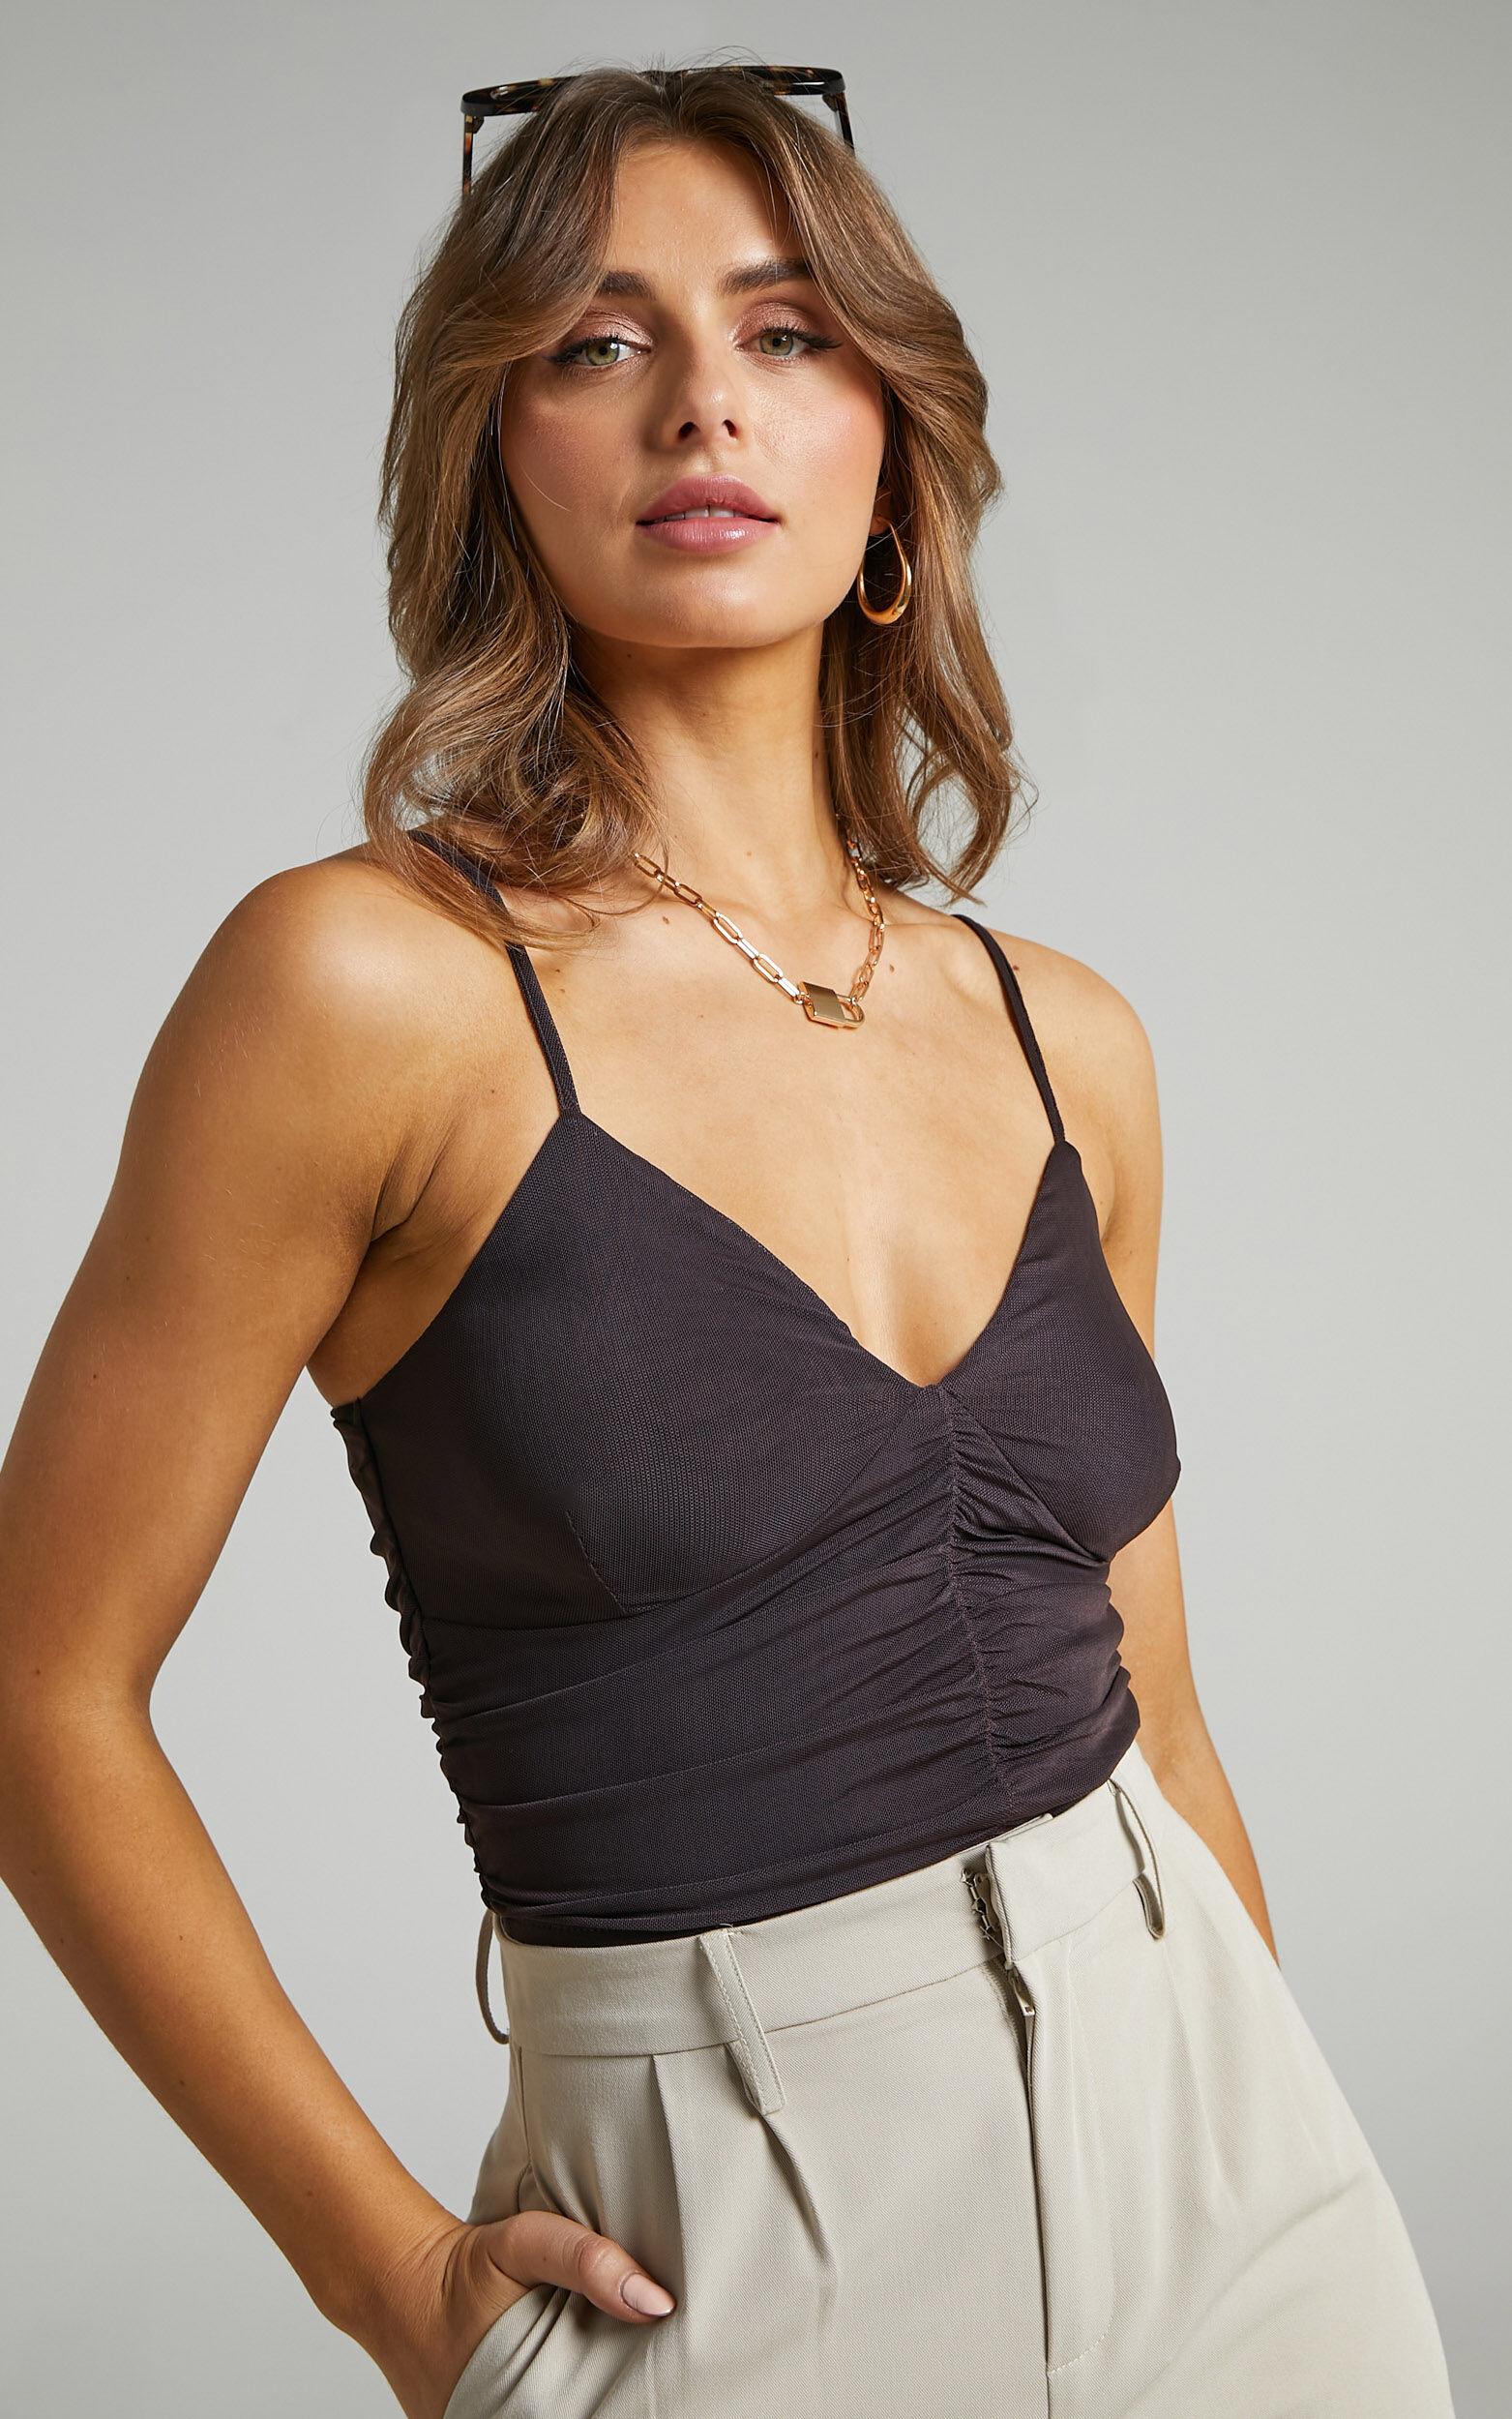 Emrata Strappy Mesh Top in Chocolate - 06, BRN1, super-hi-res image number null